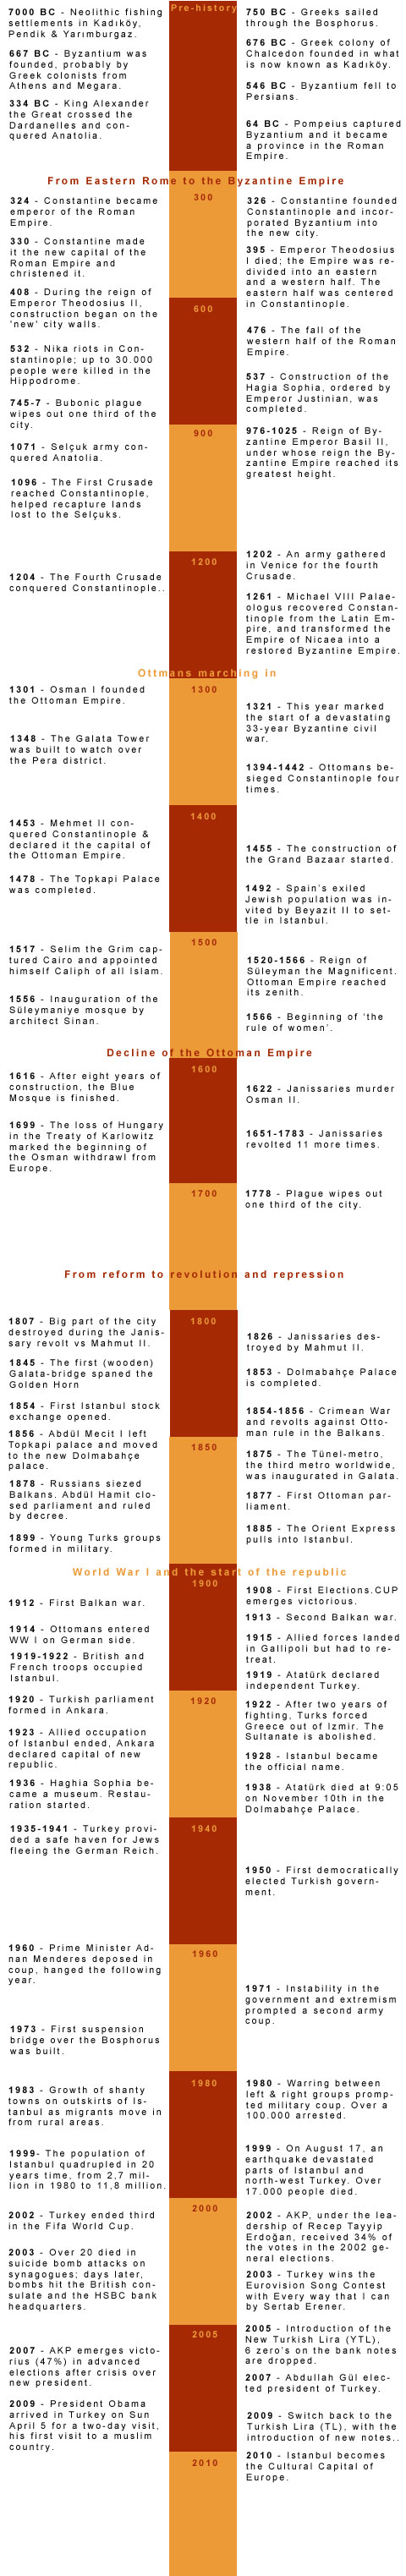 Istanbul History Timeline